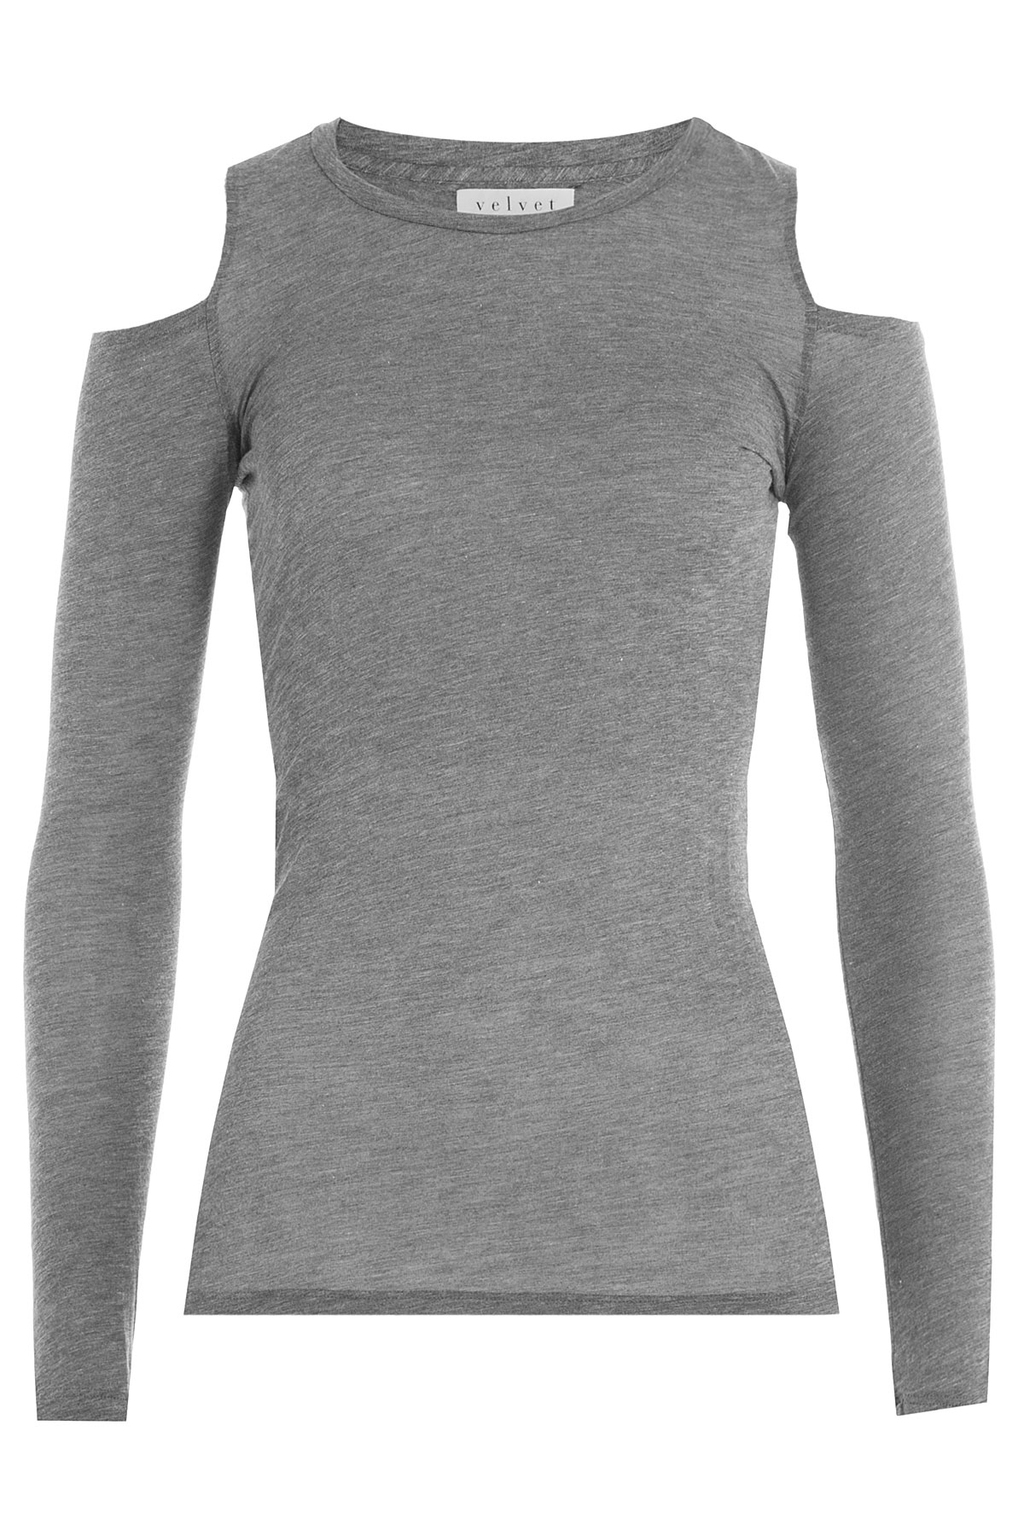 Jersey Top With Cutout Shoulders - pattern: plain; predominant colour: mid grey; occasions: casual; length: standard; style: top; fit: body skimming; neckline: crew; shoulder detail: cut out shoulder; sleeve length: long sleeve; sleeve style: standard; pattern type: fabric; texture group: jersey - stretchy/drapey; fibres: viscose/rayon - mix; season: a/w 2016; wardrobe: highlight